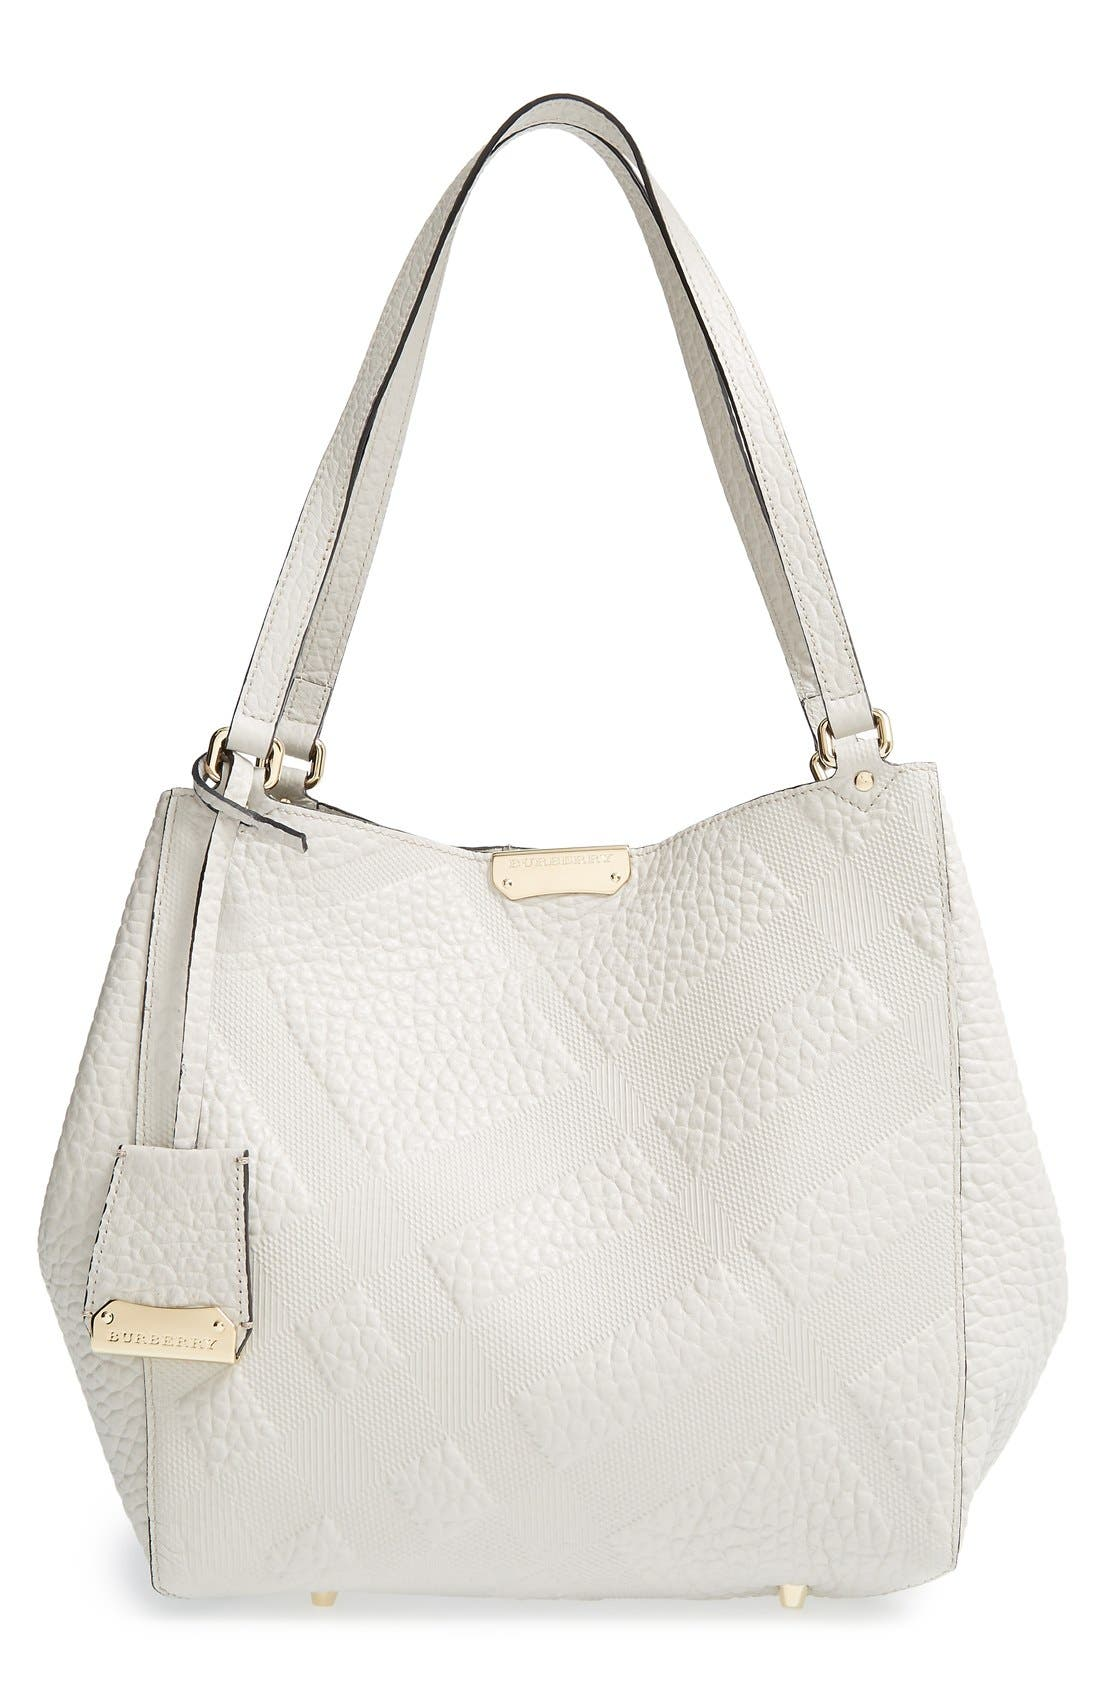 Main Image - Burberry 'Small Cantebury' Check Embossed Leather Tote